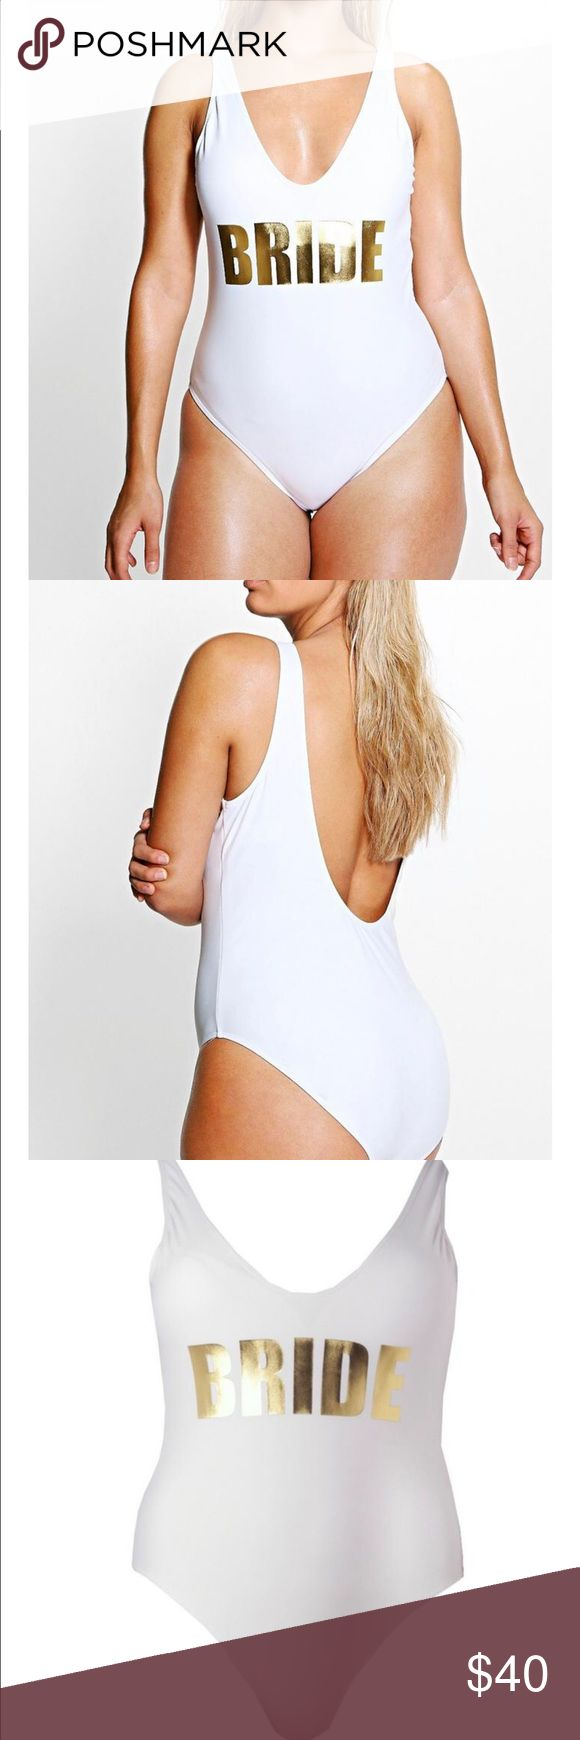 Bride bathing suit size US 20 Bride bathing suit!! Size US 20. Perfect for a future bride. Sold out online!!! worn only for pictures then washed Boohoo Plus Swim One Pieces